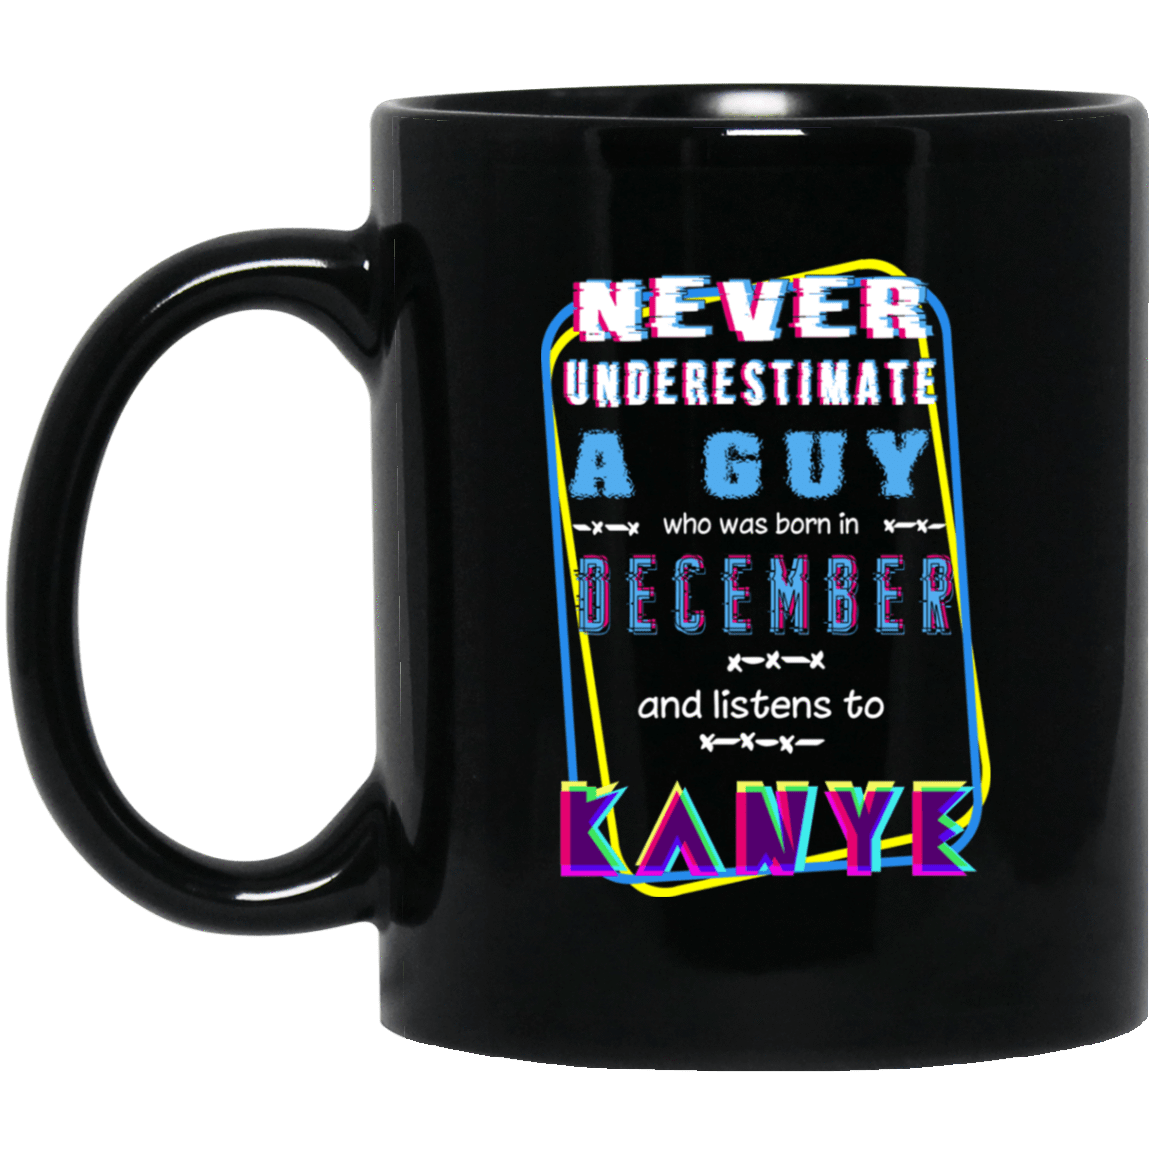 Never Underestimate A Guy Who Was Born In December And Listens To Kanye West Mug 1065-10181-76152191-49307 - Tee Ript